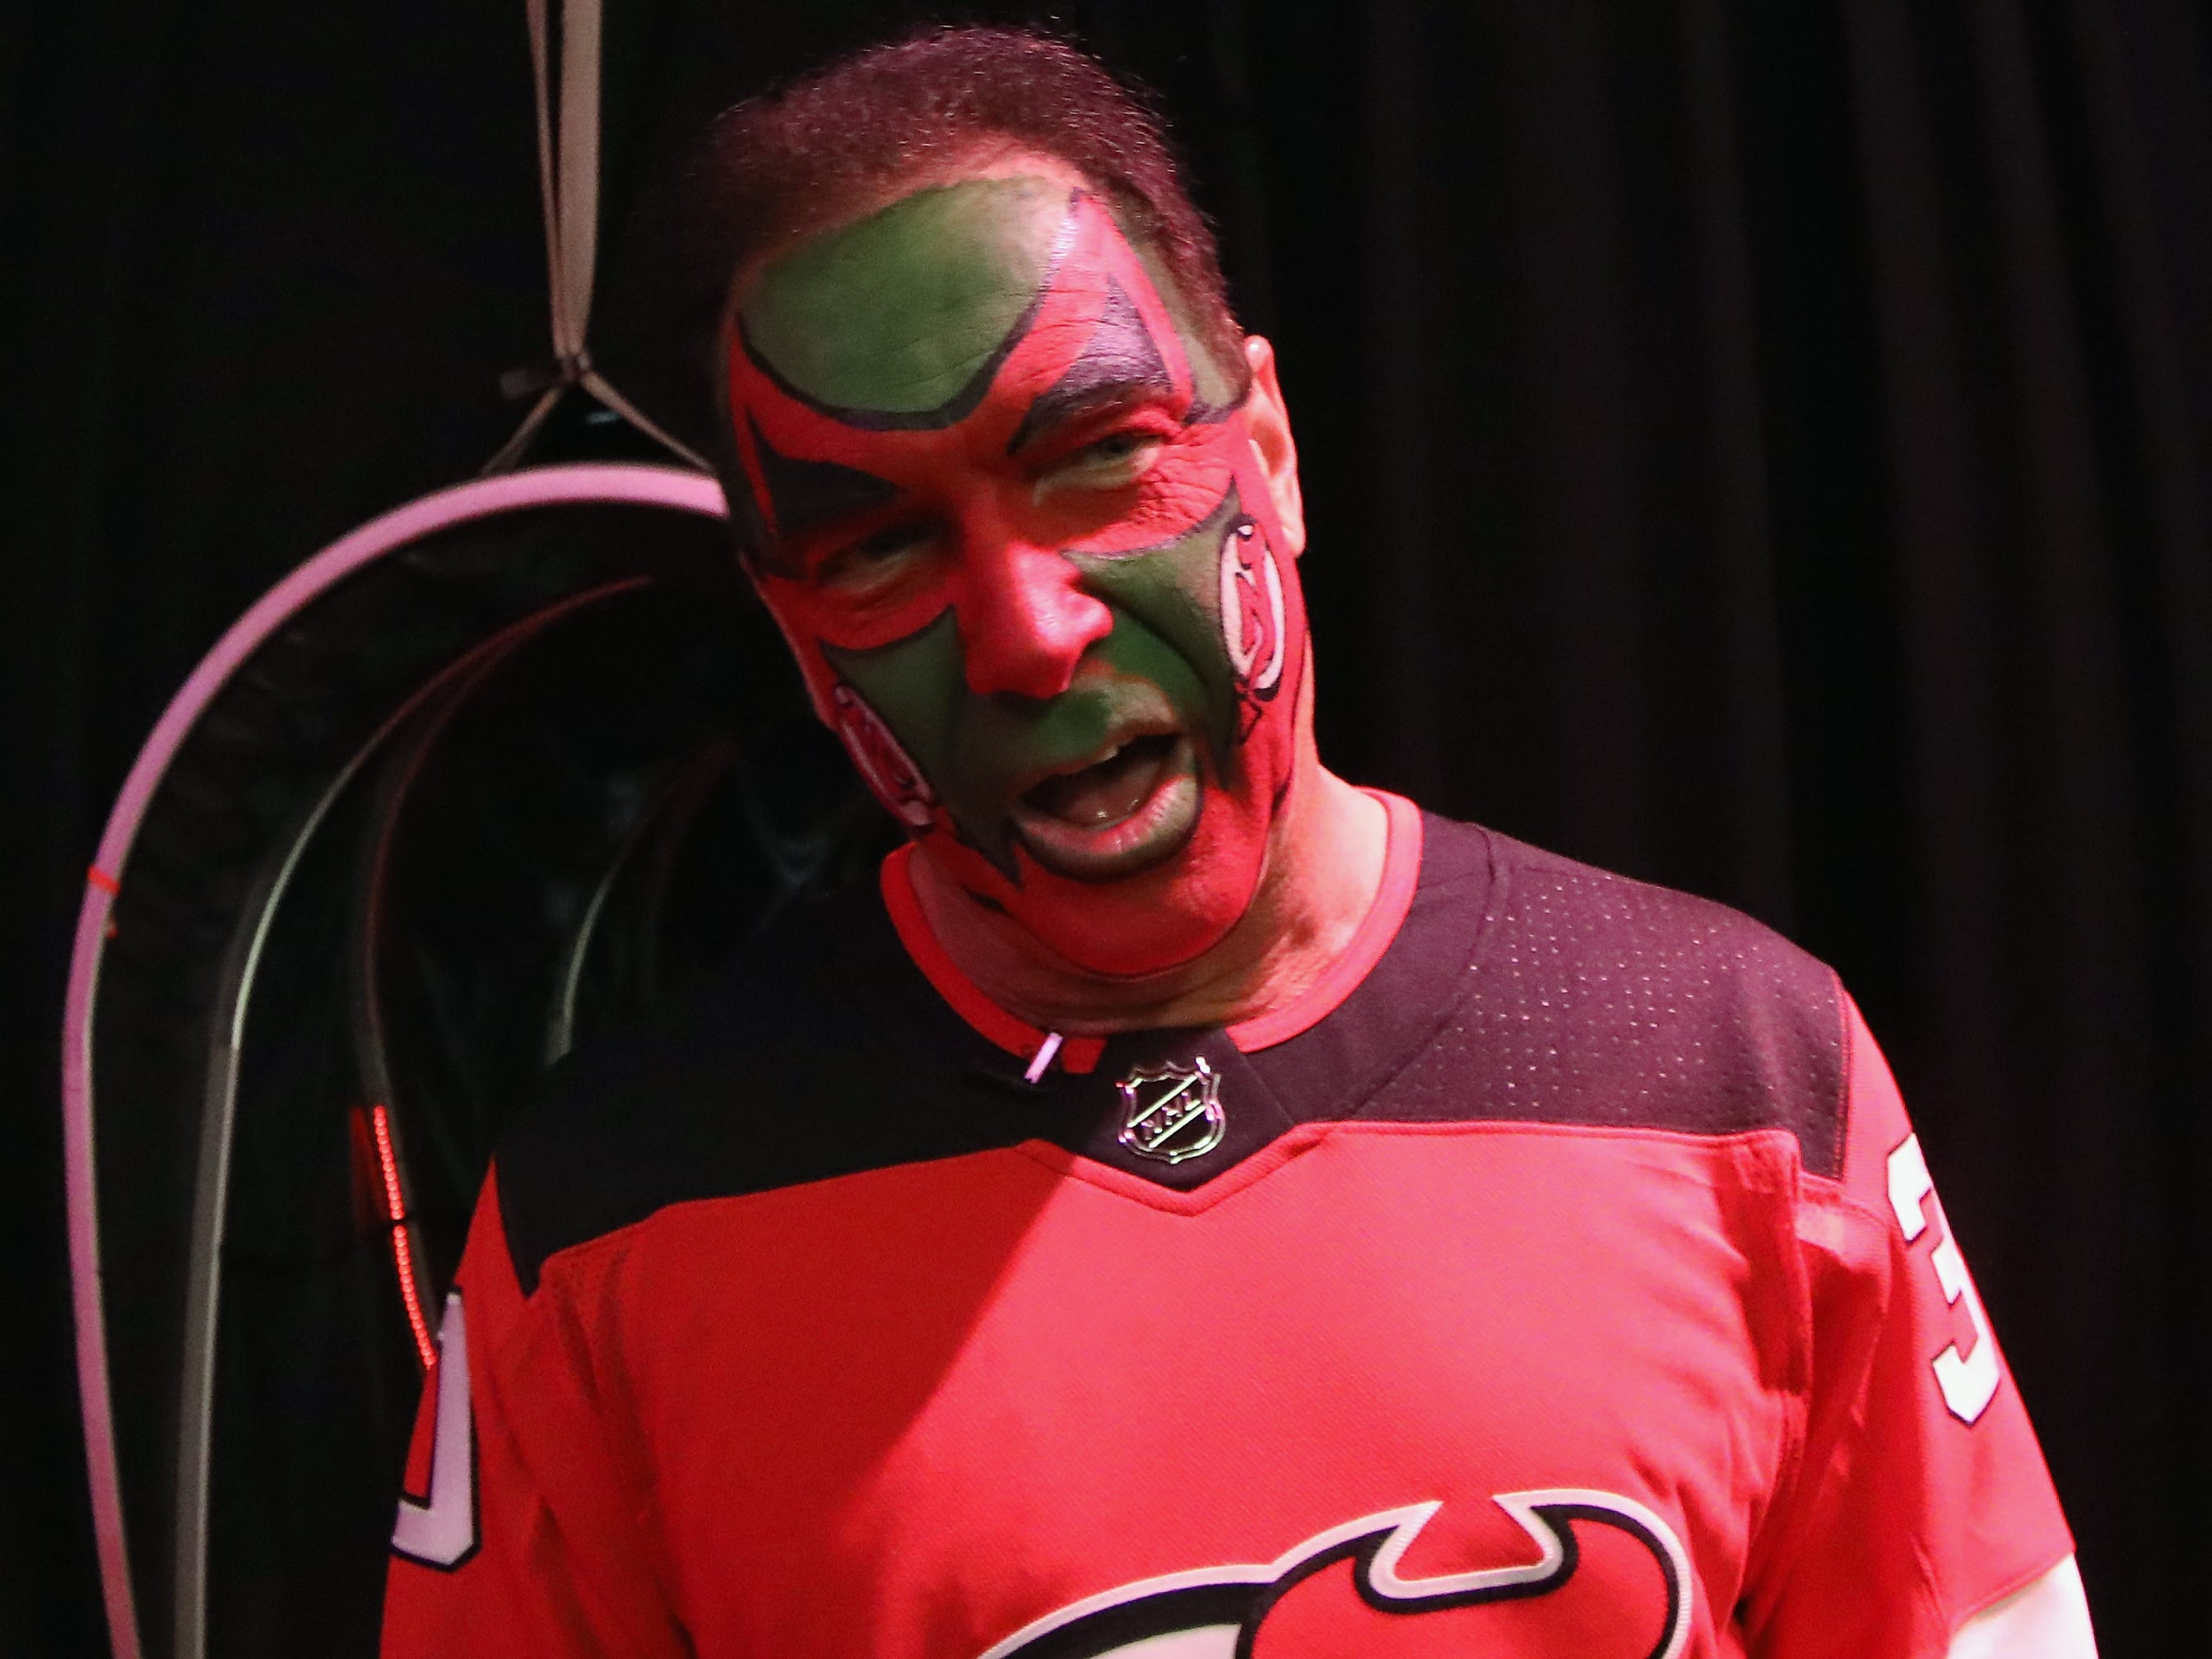 """Patrick Warburton who played the part of David Puddy on the TV show """"Seinfeld"""" arrives for the game between the Pittsburgh Penguins and the New Jersey Devils at the Prudential Center on February 19, 2019 in Newark, New Jersey. The Devils gave out 'Puddy' bobble head dolls before the game."""